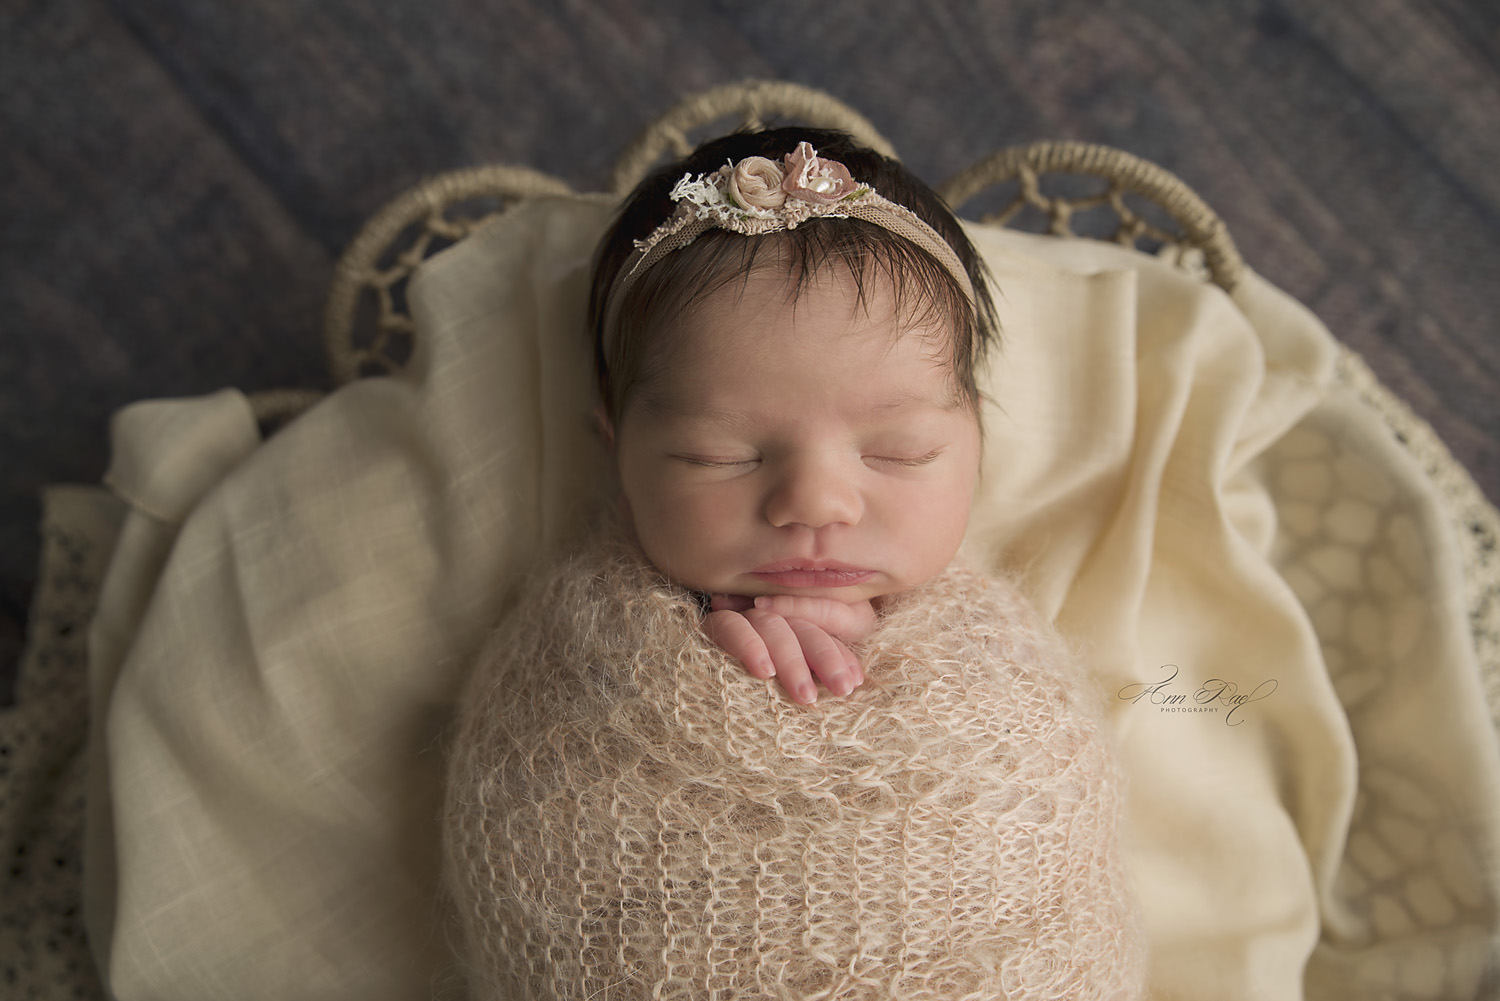 St. Louis Newborn Photographer travels to Chesterfield for baby pictures